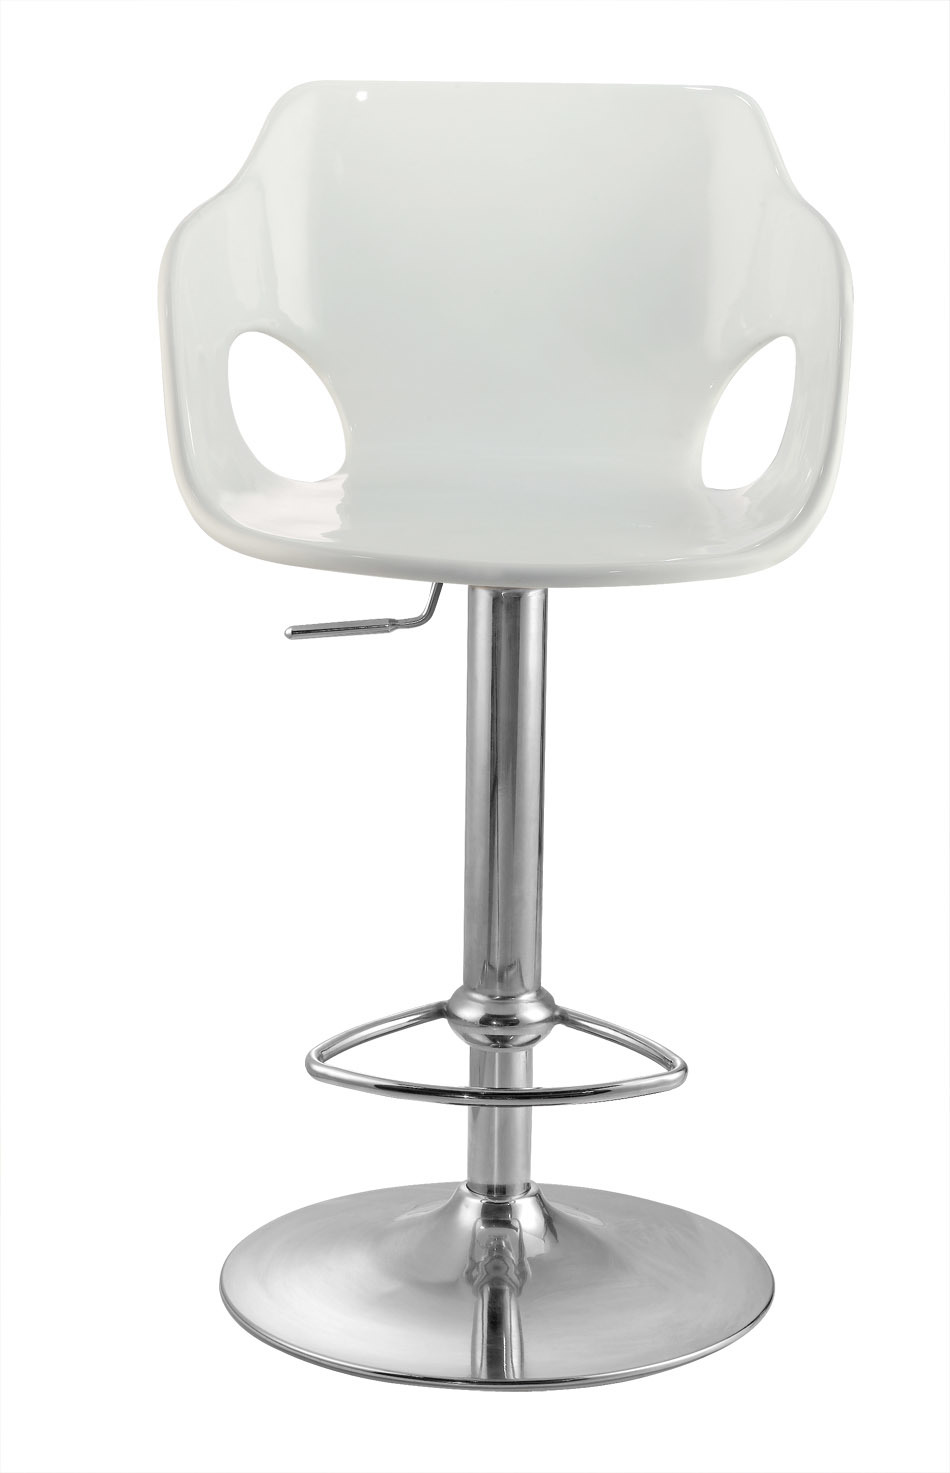 Strange Hot Item New Style Hot Sale White Seat And Metal Bottom Lounge Chair With Bar Stools Camellatalisay Diy Chair Ideas Camellatalisaycom